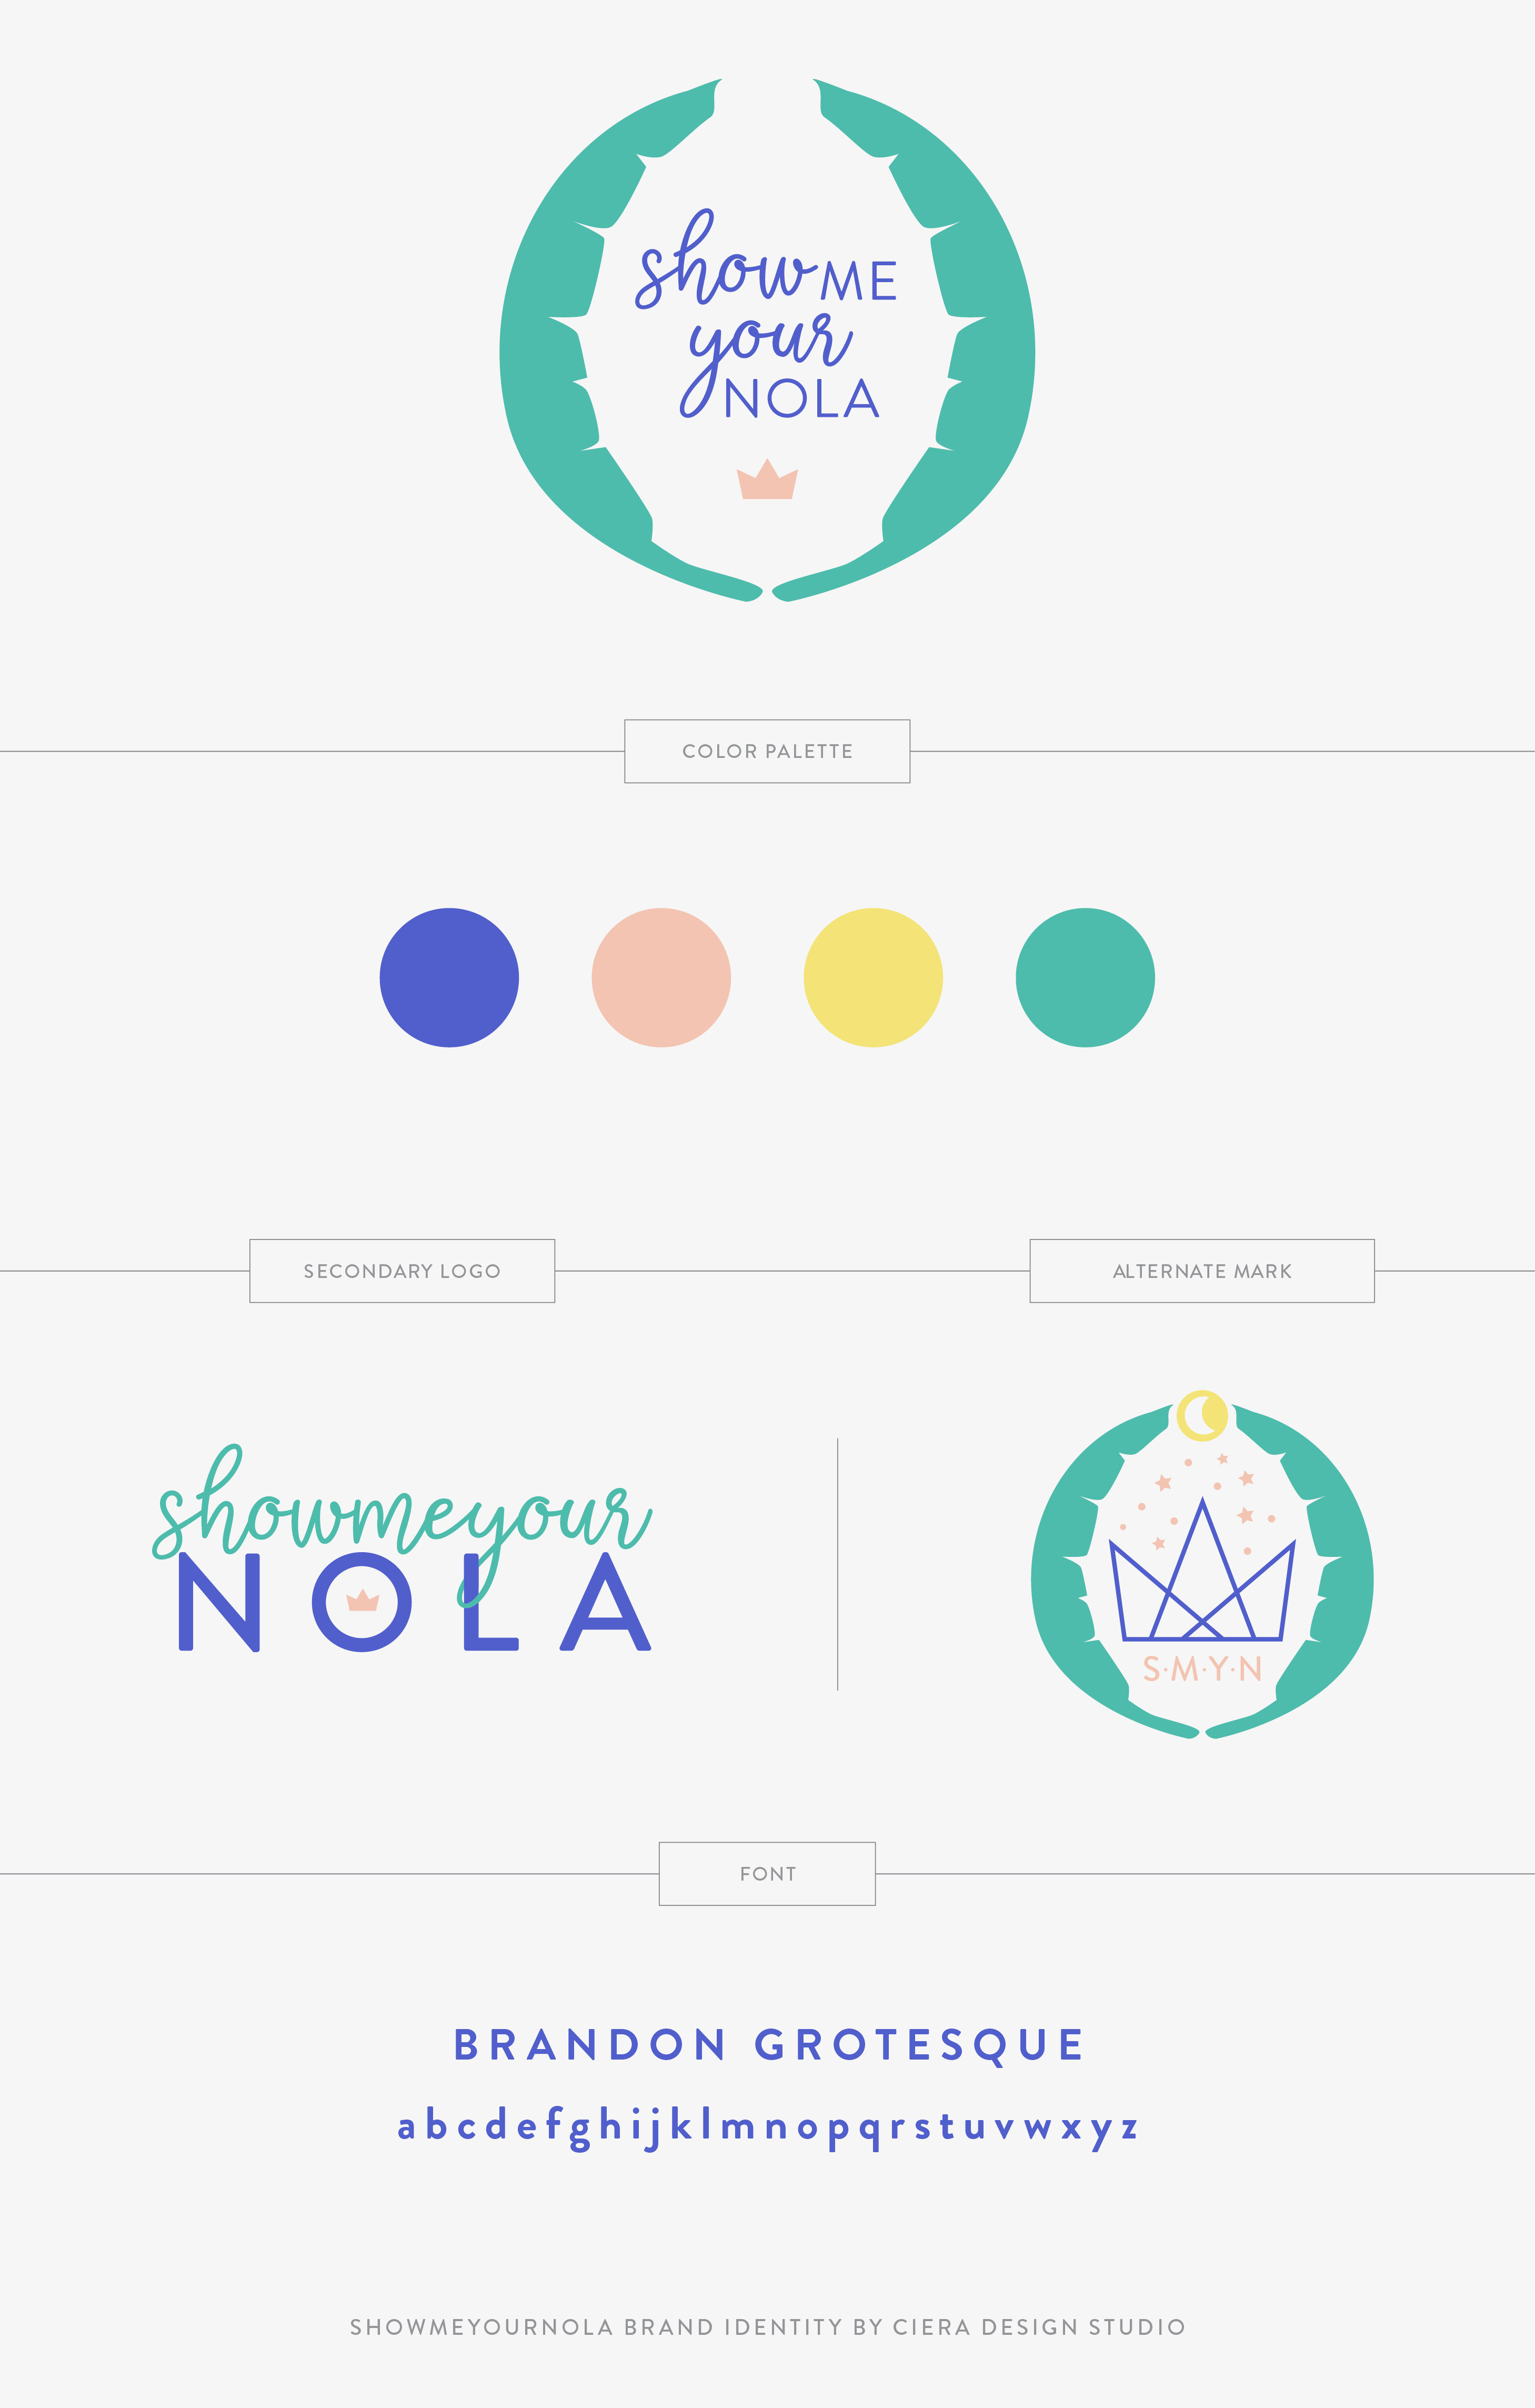 We created a clean, simple and chic logo that also expresses the fun, whimsy and magic of New Orleans. The brand identity is friendly and joyful while also showing the expertise, reliability and authenticity of founder Danielle Granger Nava. The brand image targets Millennial women, professionals, entrepreneurs and lovers of food & travel. Ciera Design Studio has been helping creative businesses stand out and exceed their biggest goals through strategic design & branding since 2010.